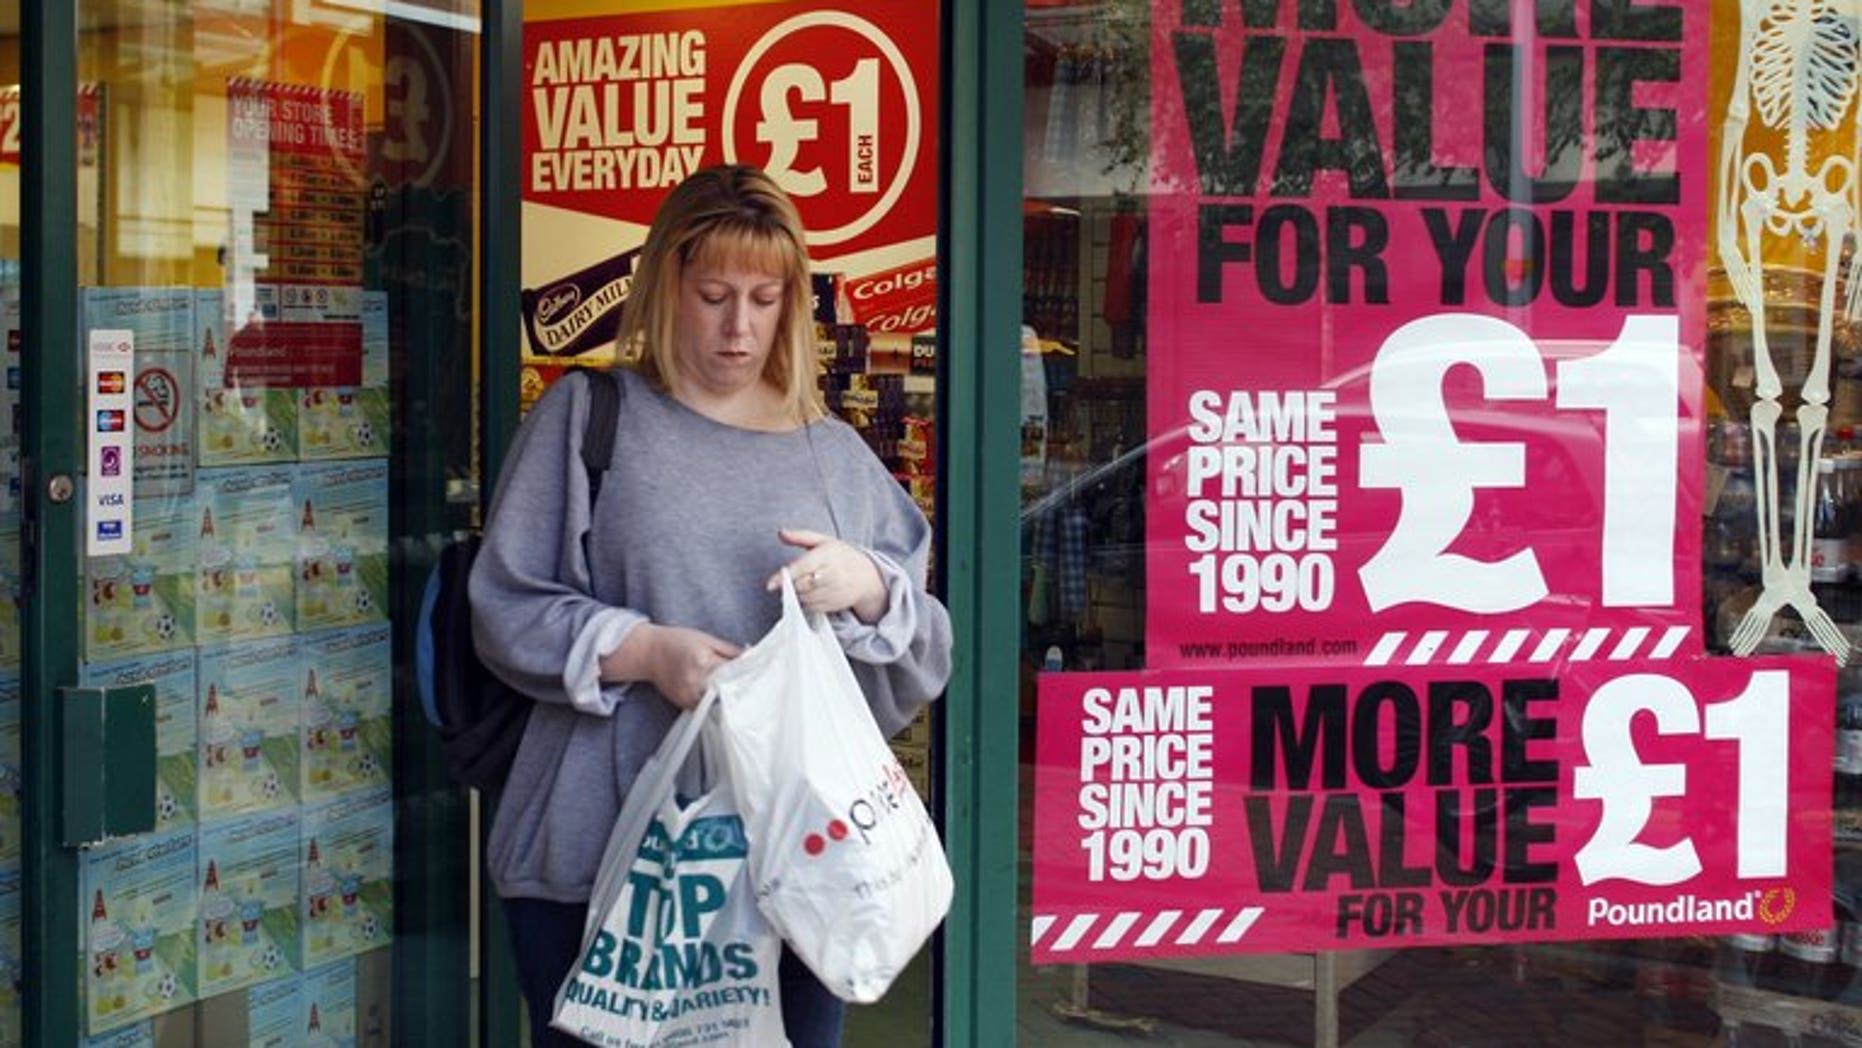 A woman leaves a shop in Reading on October 1, 2008. Britain's annual inflation fell in July from a 14-month peak reached in June, official data showed.